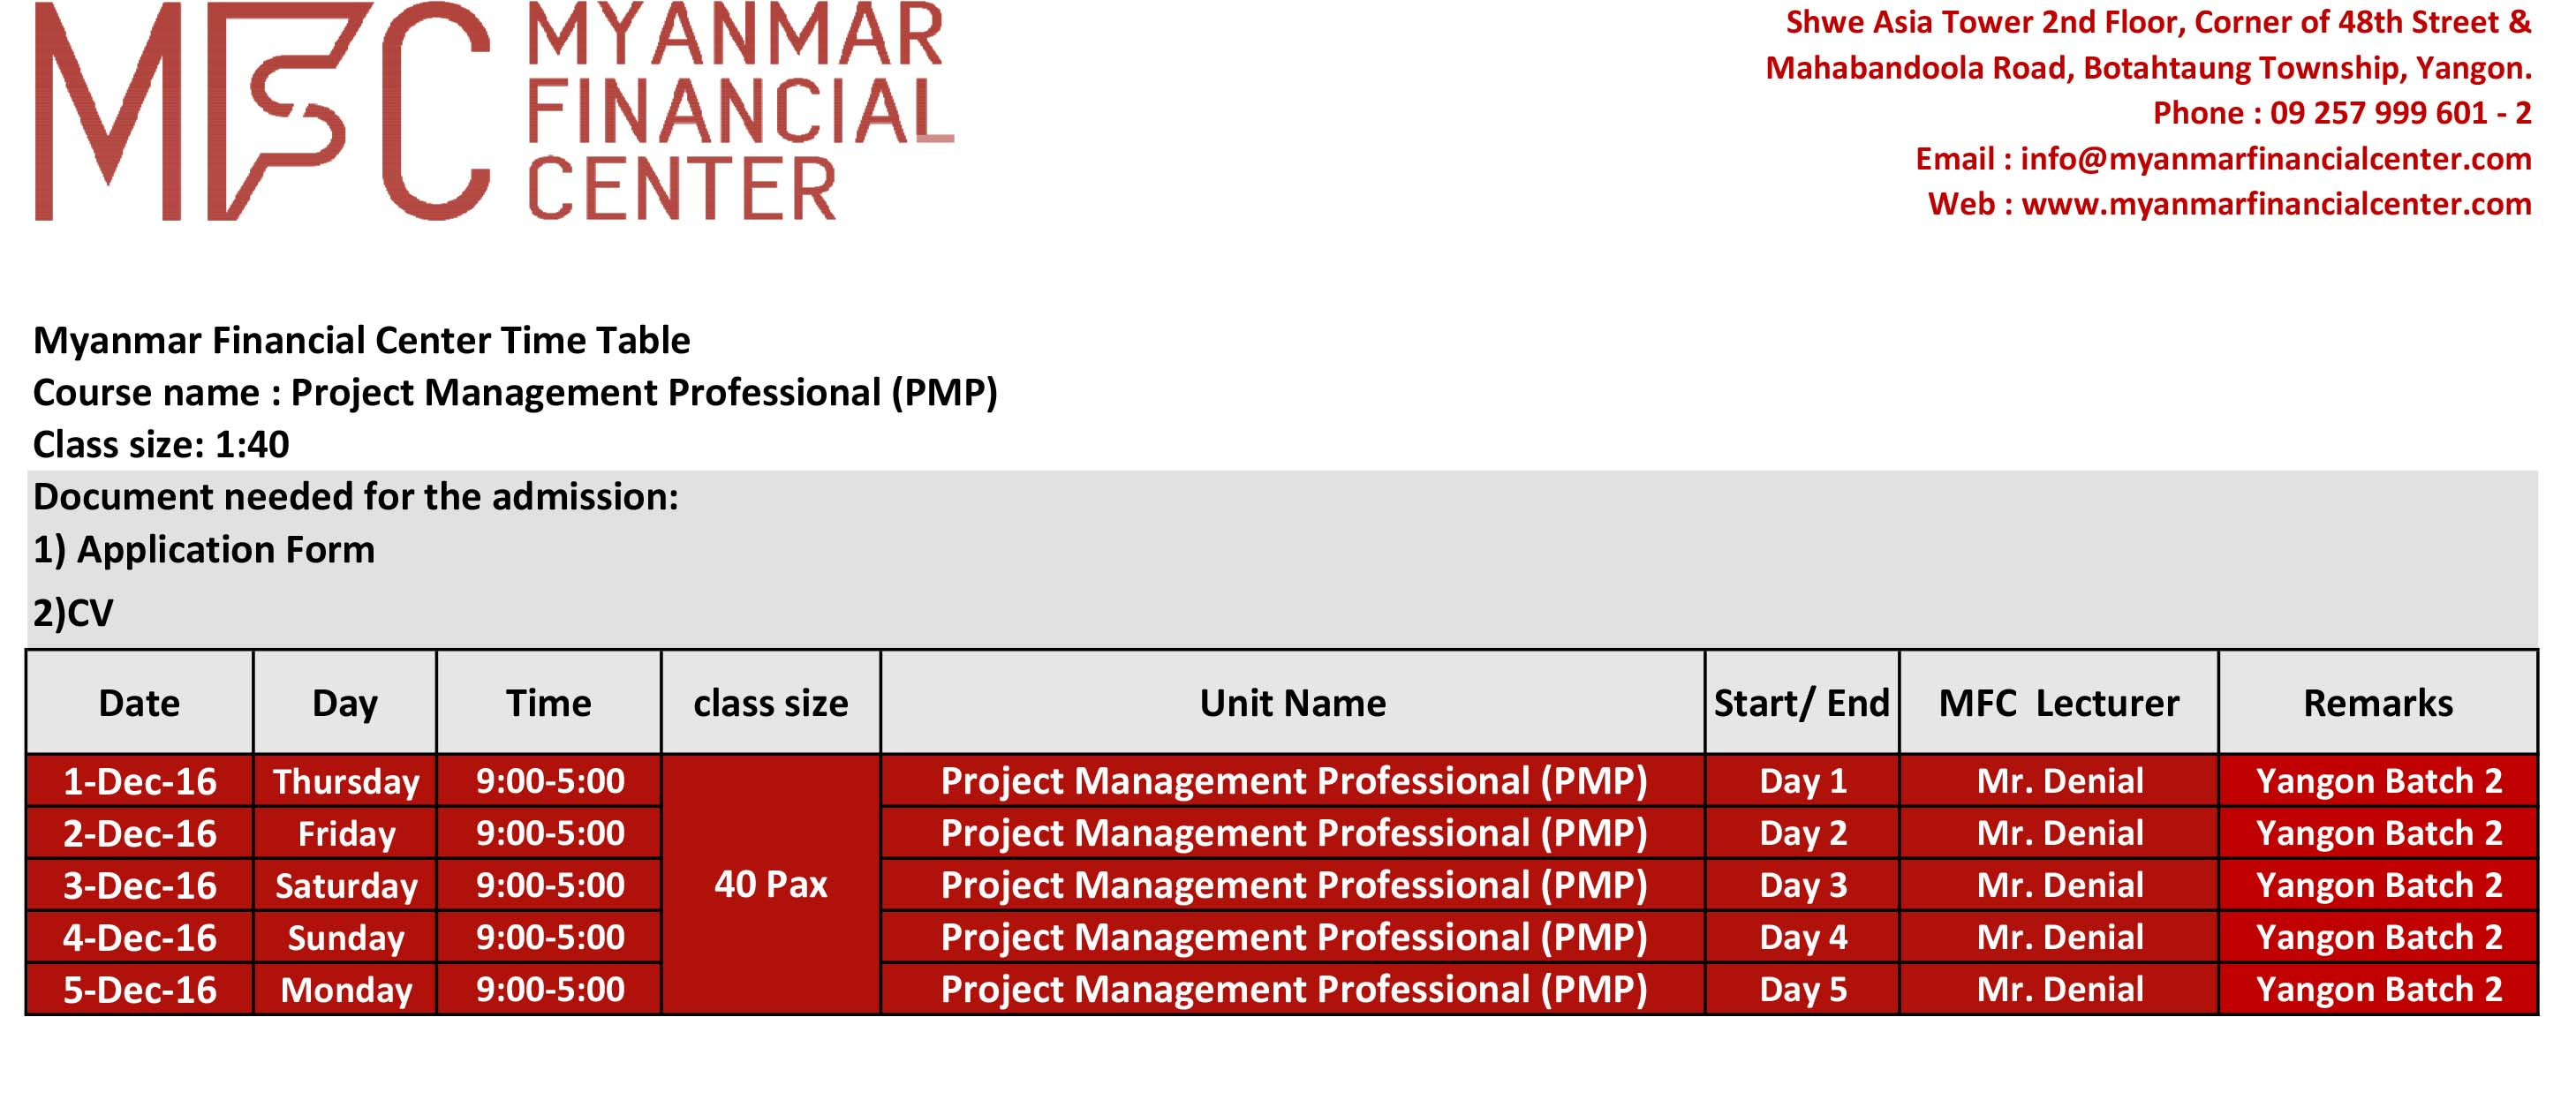 MES Timetable (Yangon Batch 2)